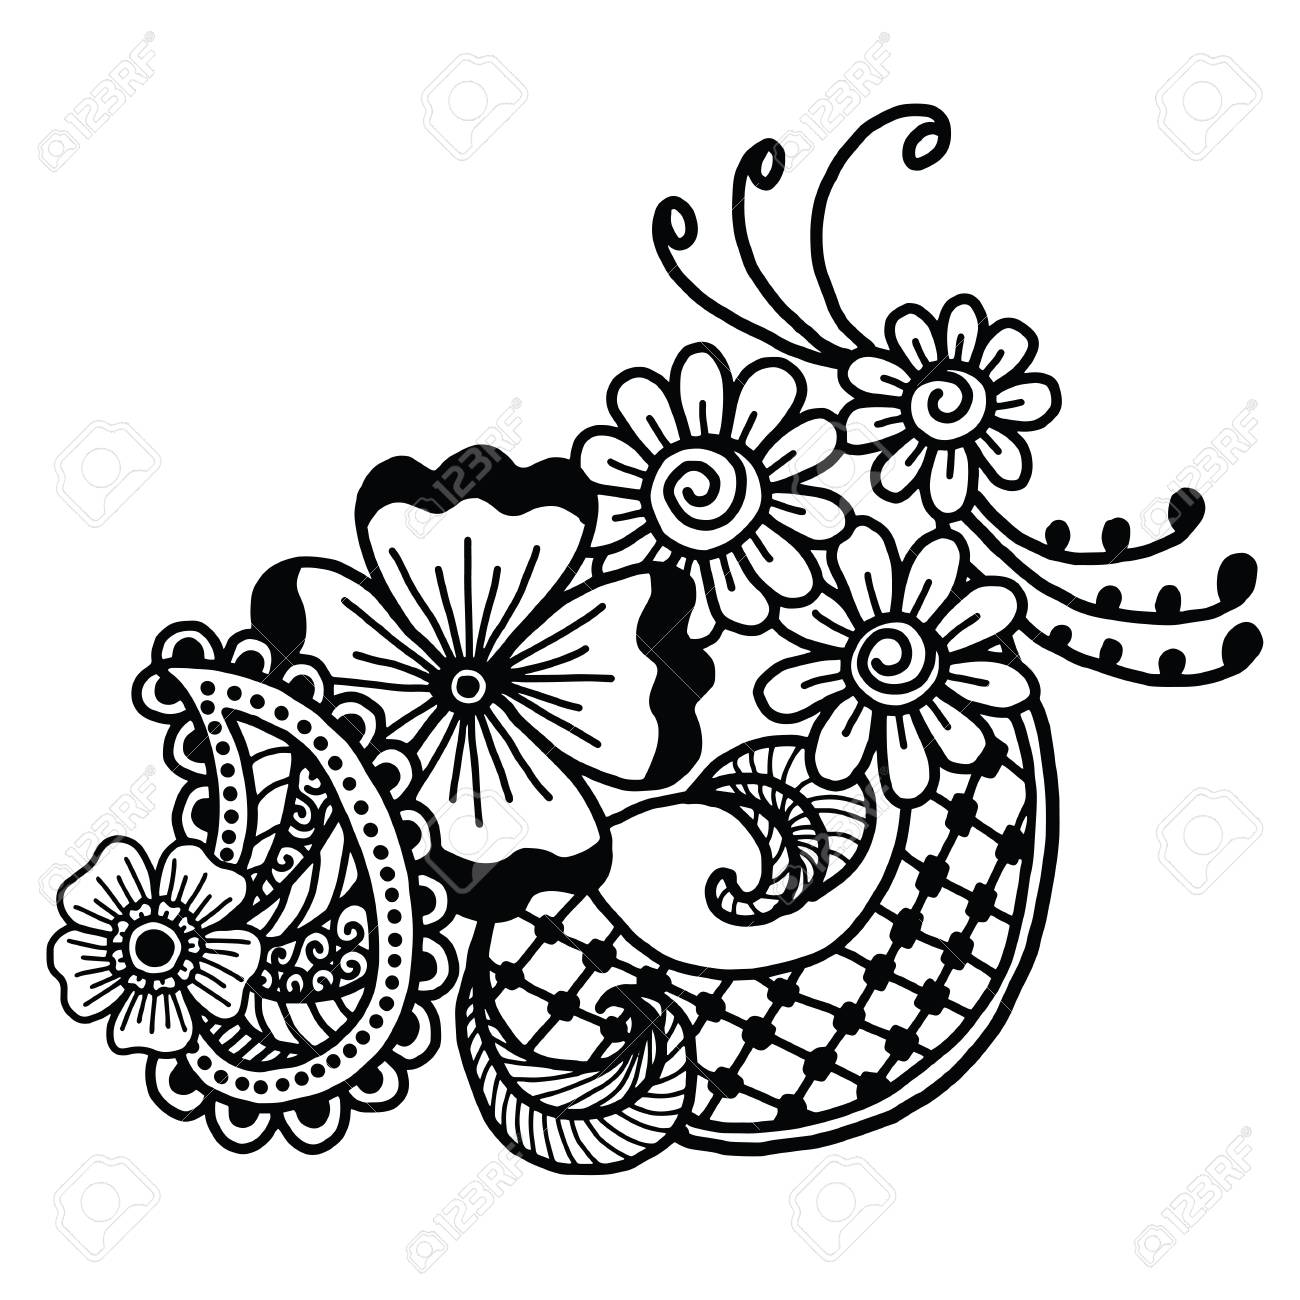 mehndi design floral pattern coloring book pattern royalty free